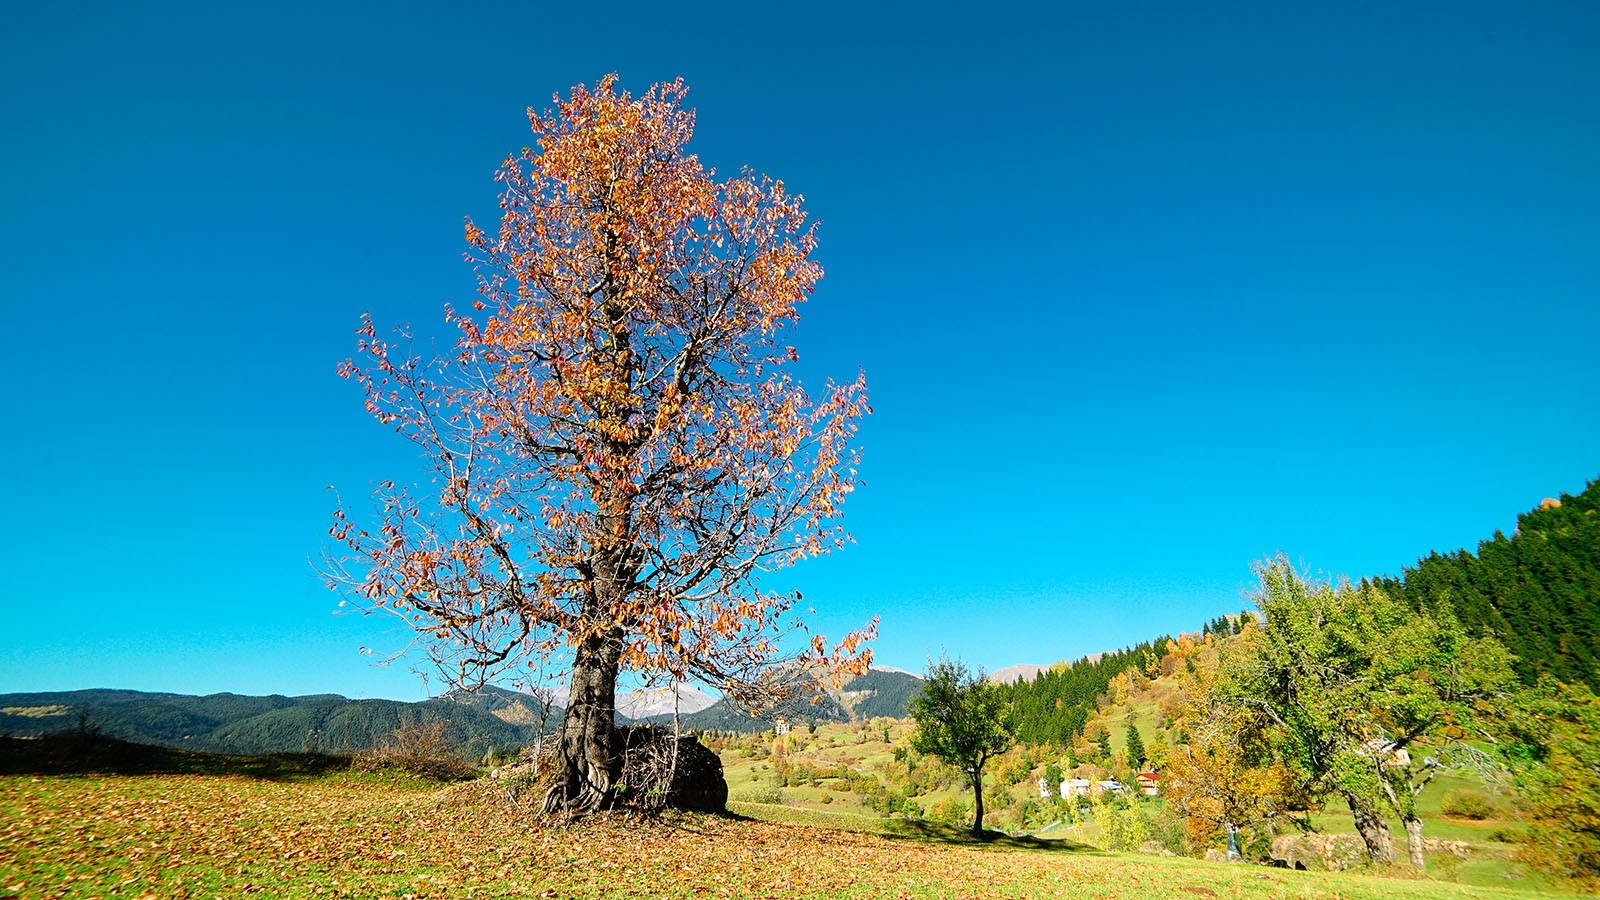 Turkey's Black Sea mountains come alive with color